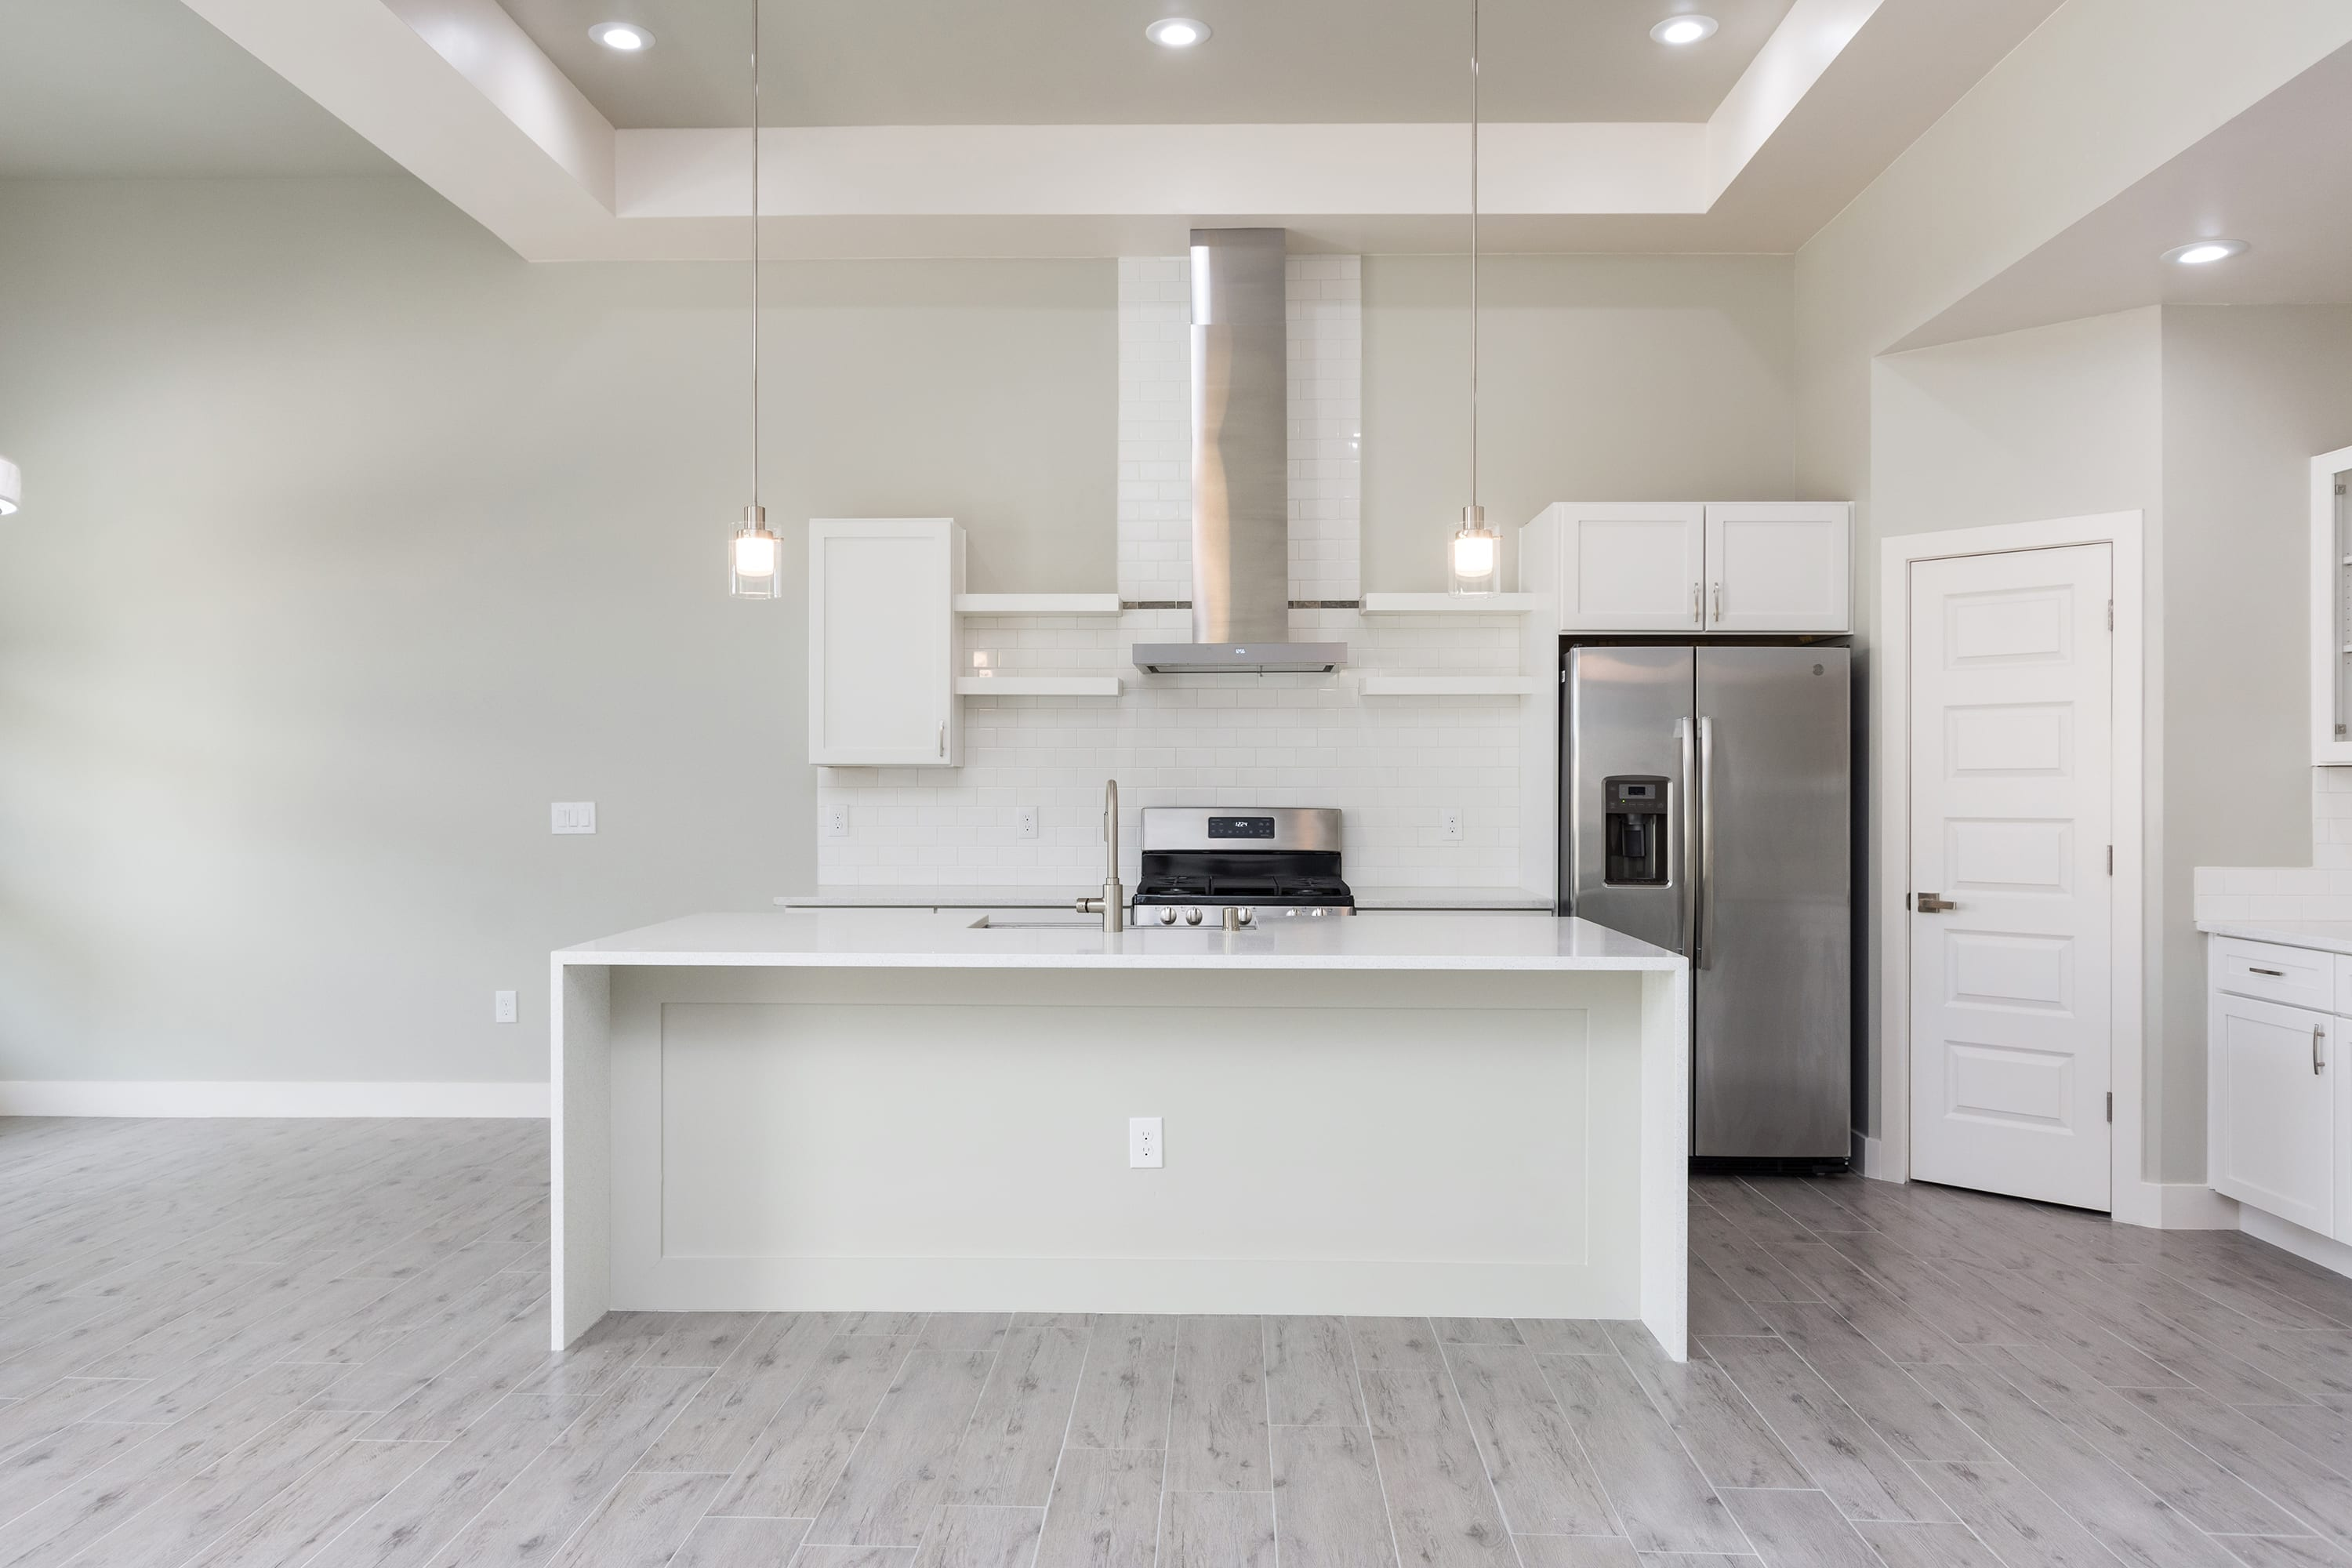 Interior ceiling shot of kitchen in 2884 Maddox contemporary home